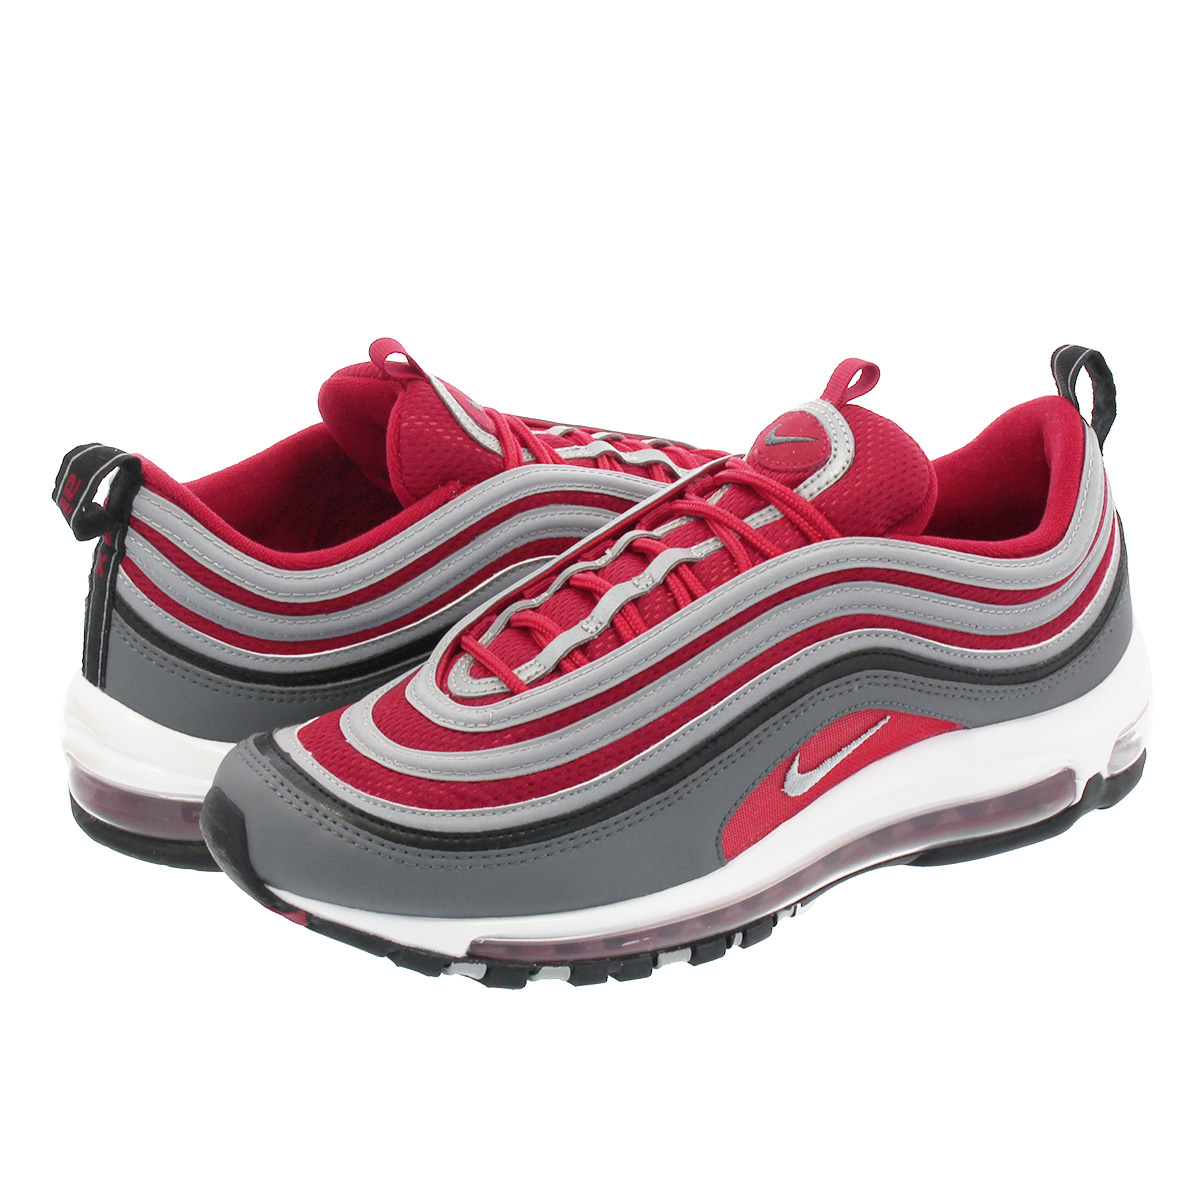 on sale 47f0d 05785 NIKE AIR MAX 97 Kie Ney AMAX 97 DARK GREY WOLF GREY GYM RED ...